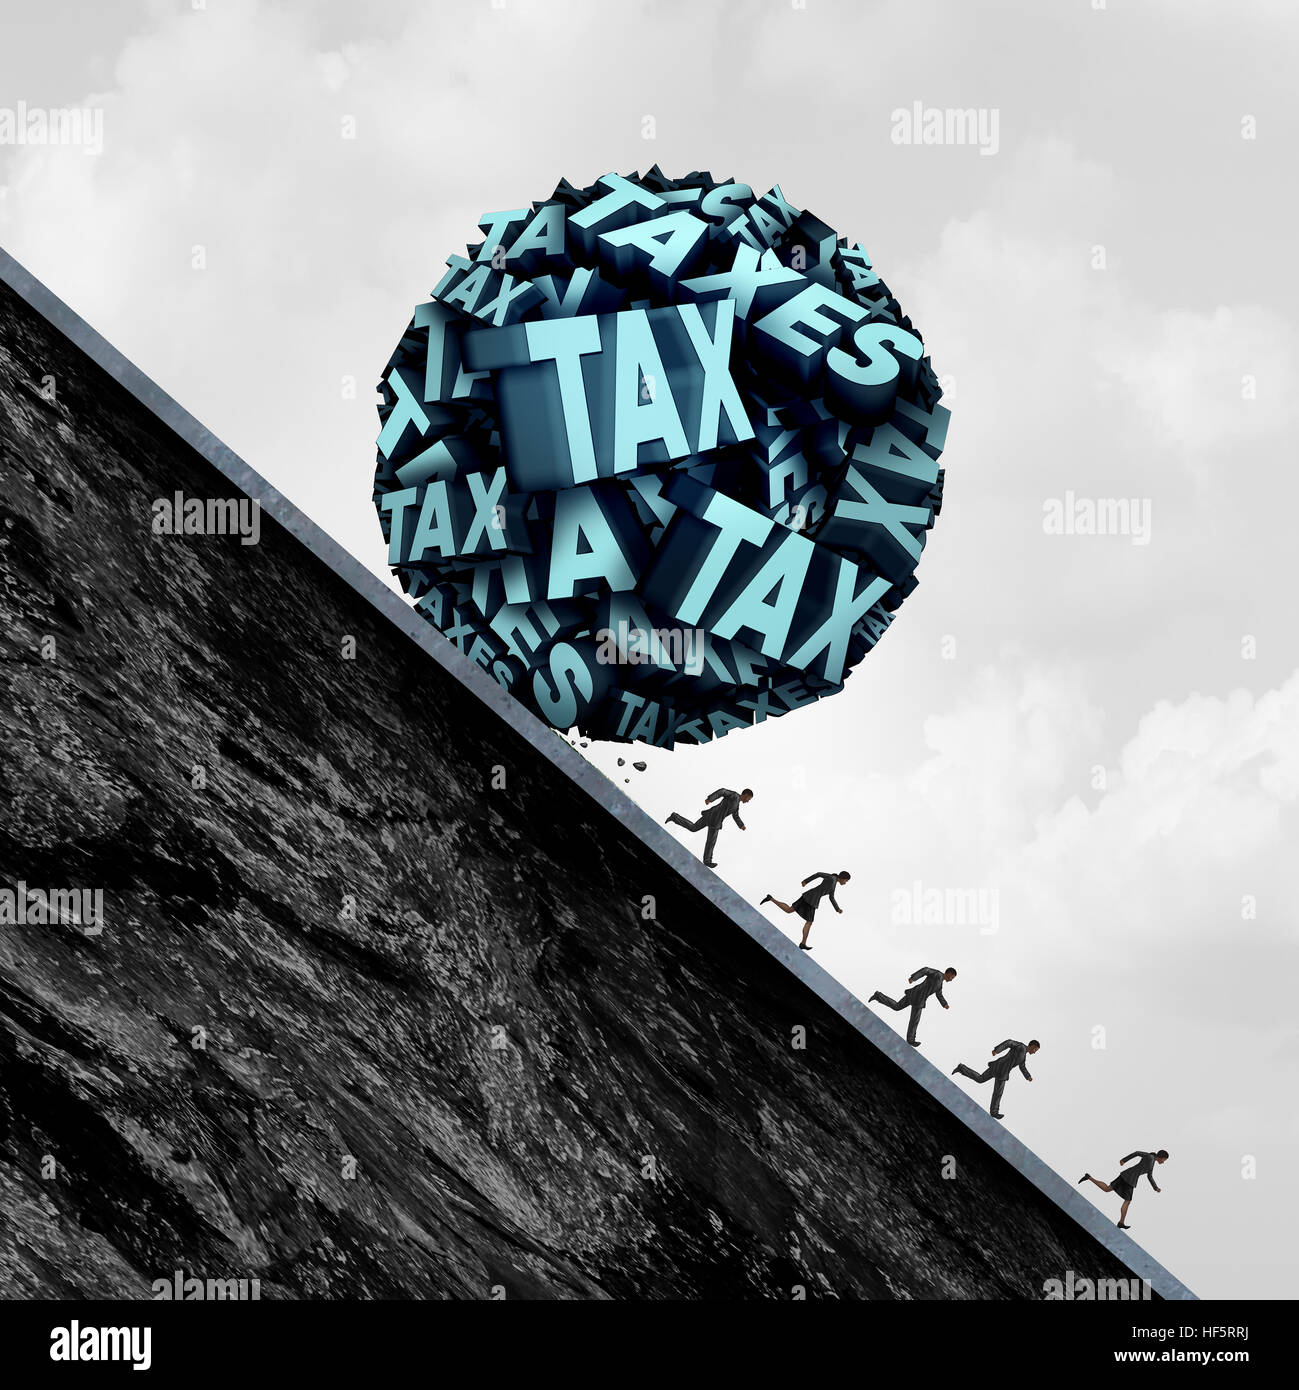 Tax stress concept and taxation stress symbol as a group of text shaped as a ball rolling down a hill towards people - Stock Image